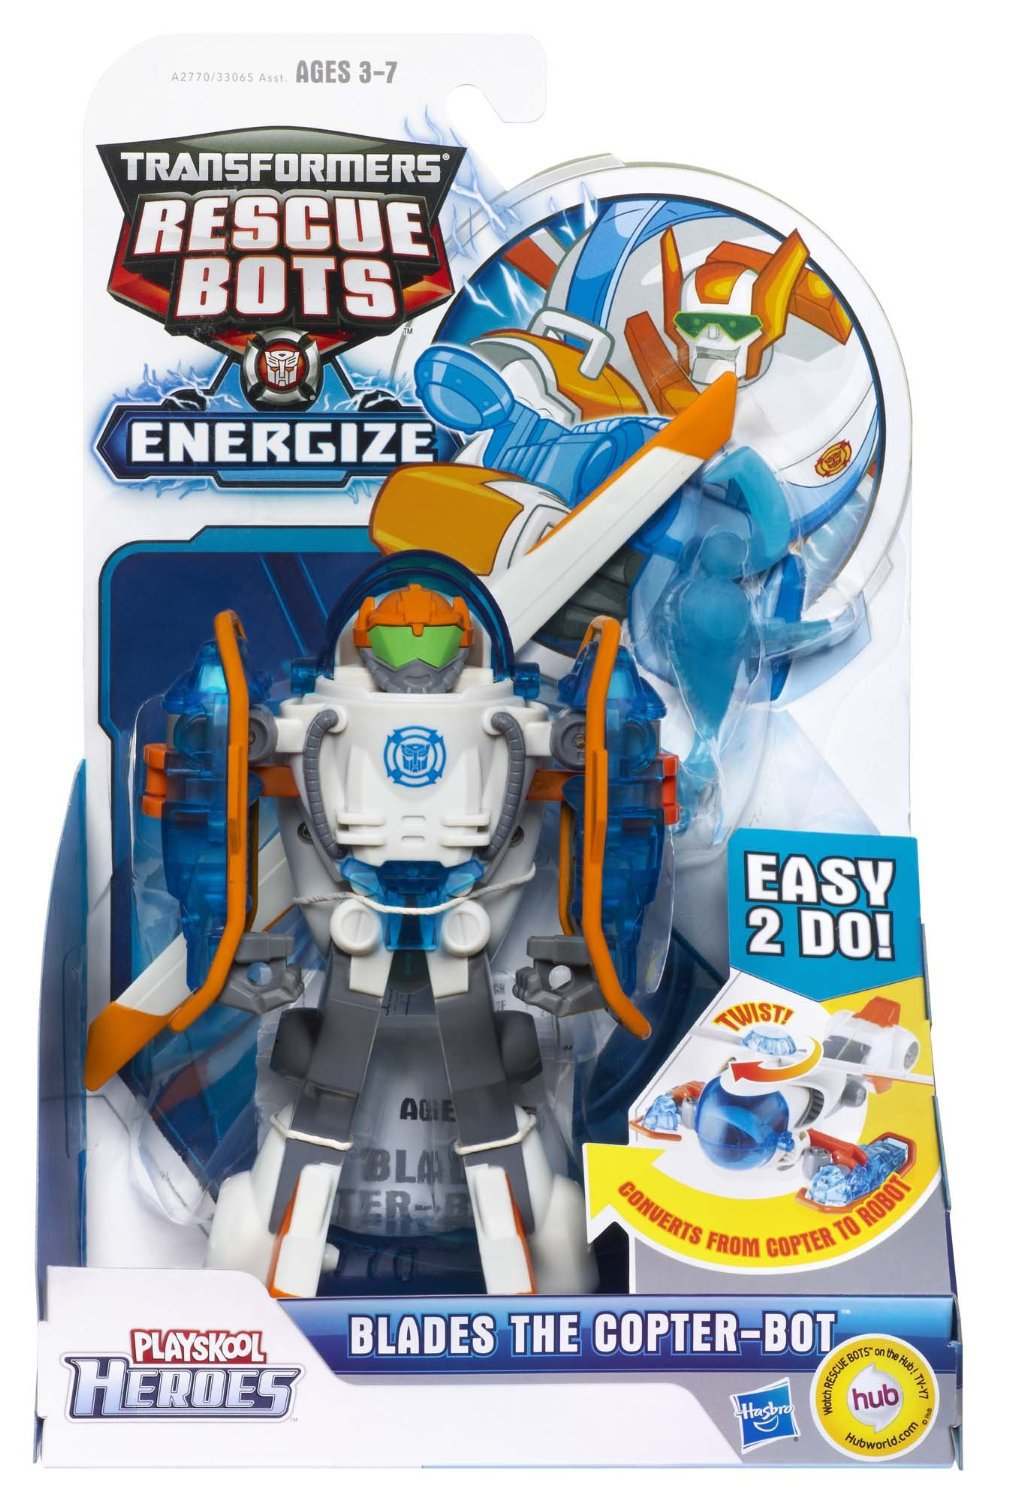 Playskool Heroes Transformers Rescue Bots Blades the Copter-Bot Figure